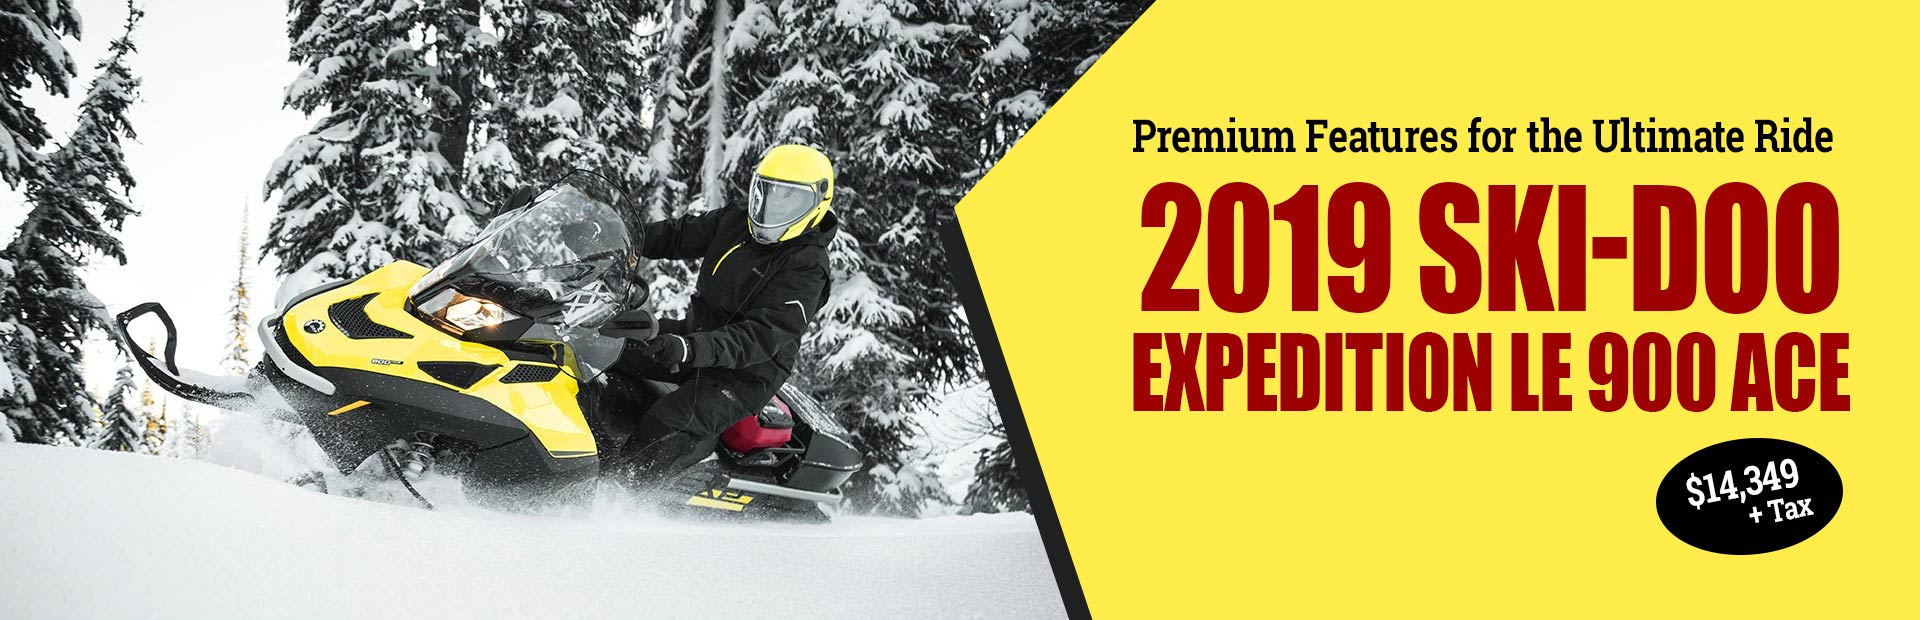 Get the 2019 Ski-Doo Expedition LE 900 ACE for $14,349 + tax!